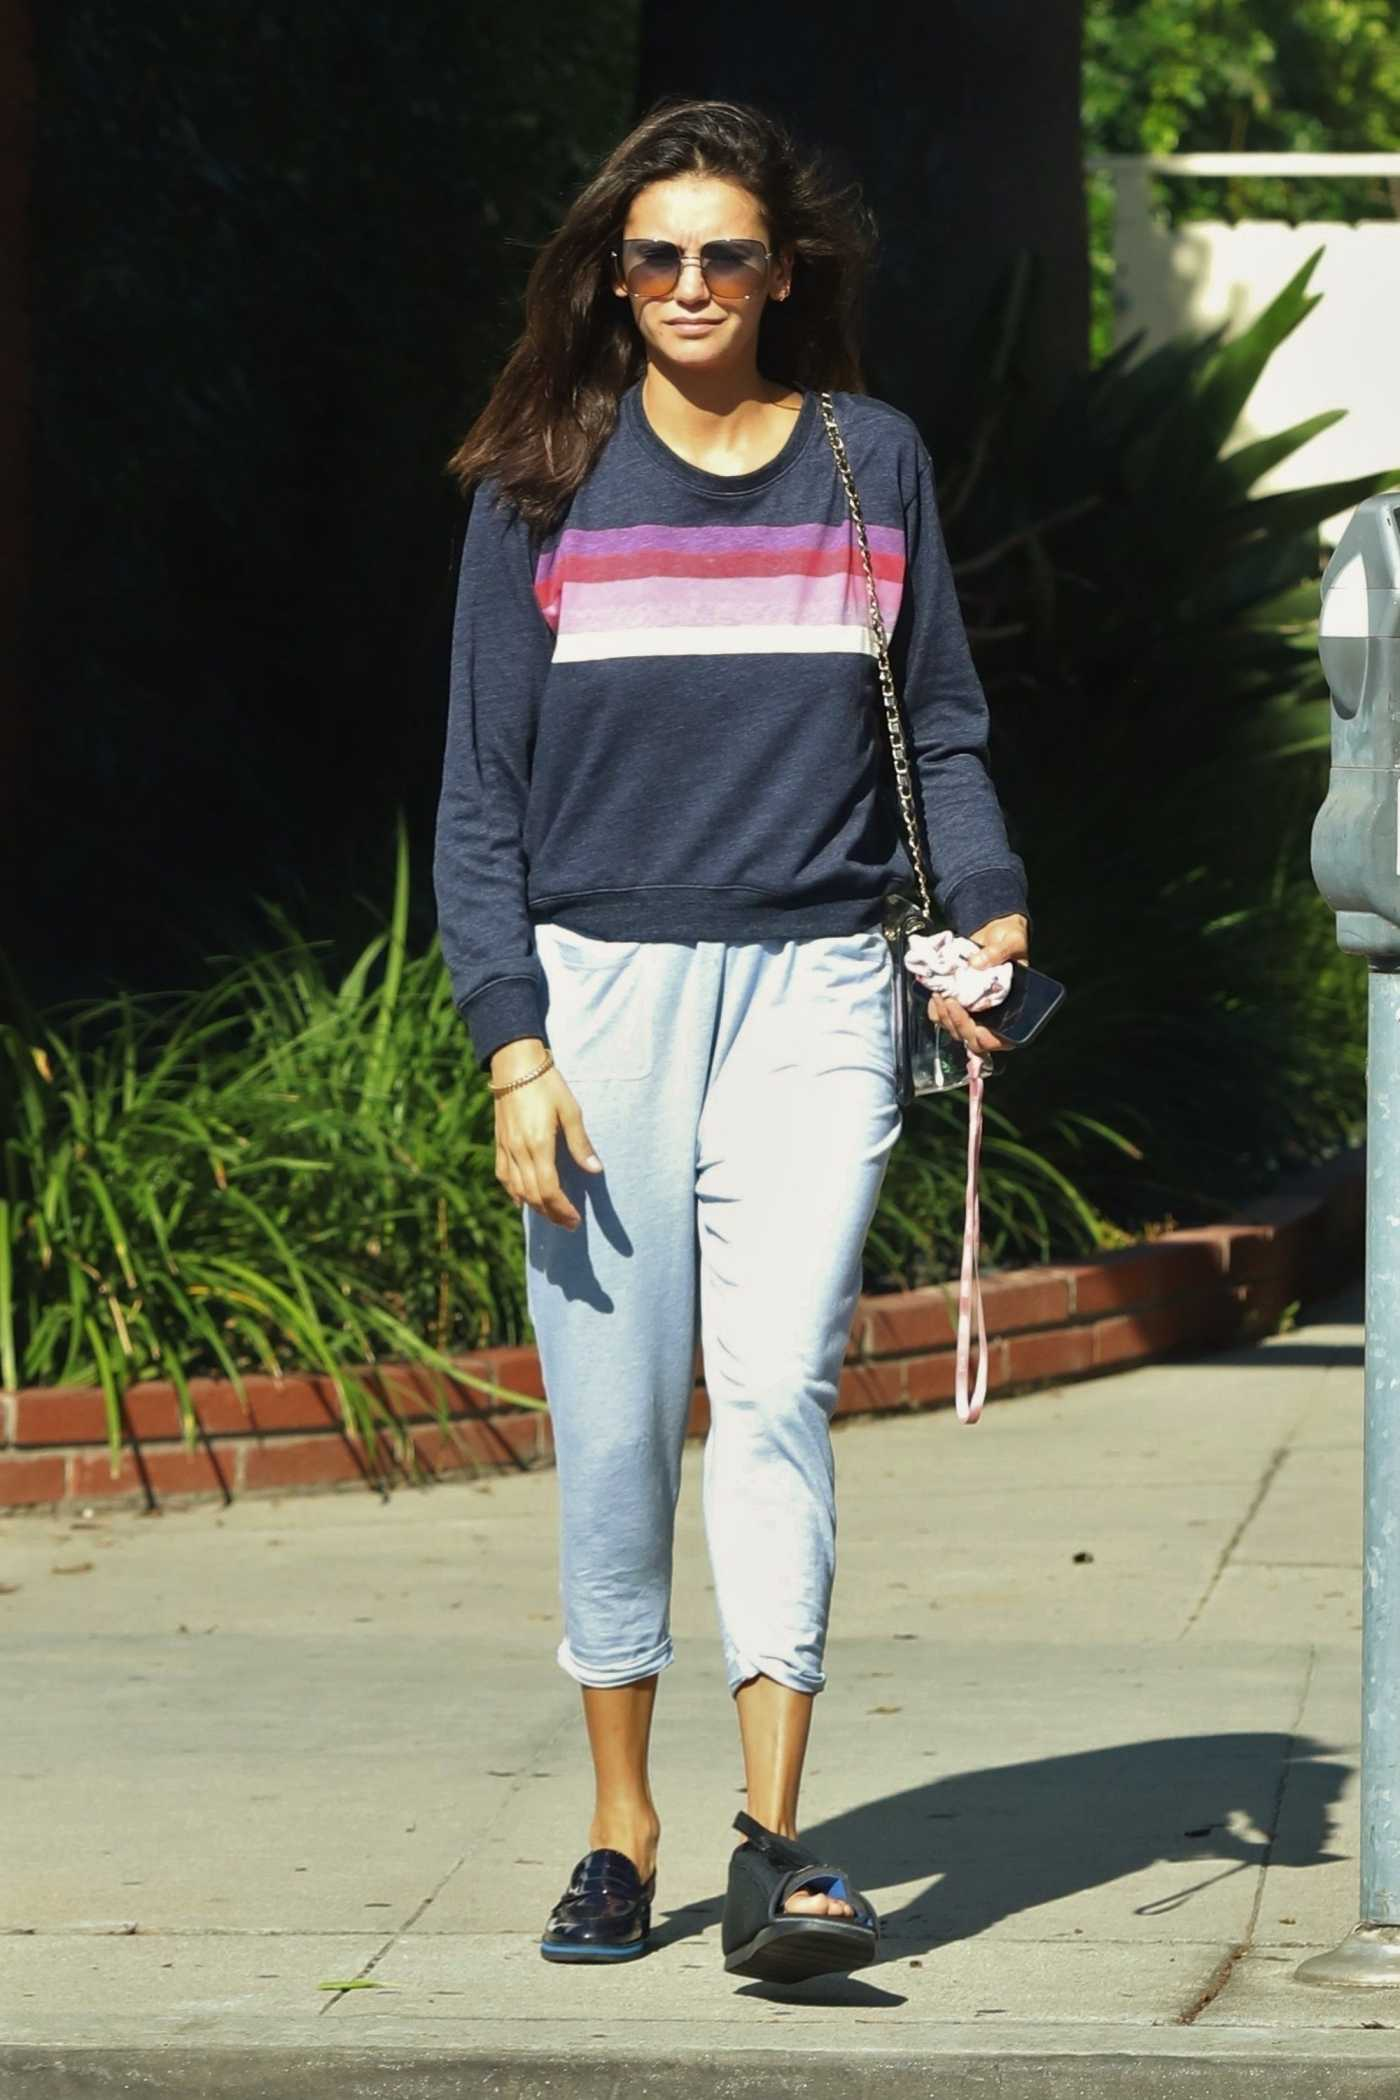 Nina Dobrev in a Gray Sweatshirt Was Seen Out in LA 08/26/2019